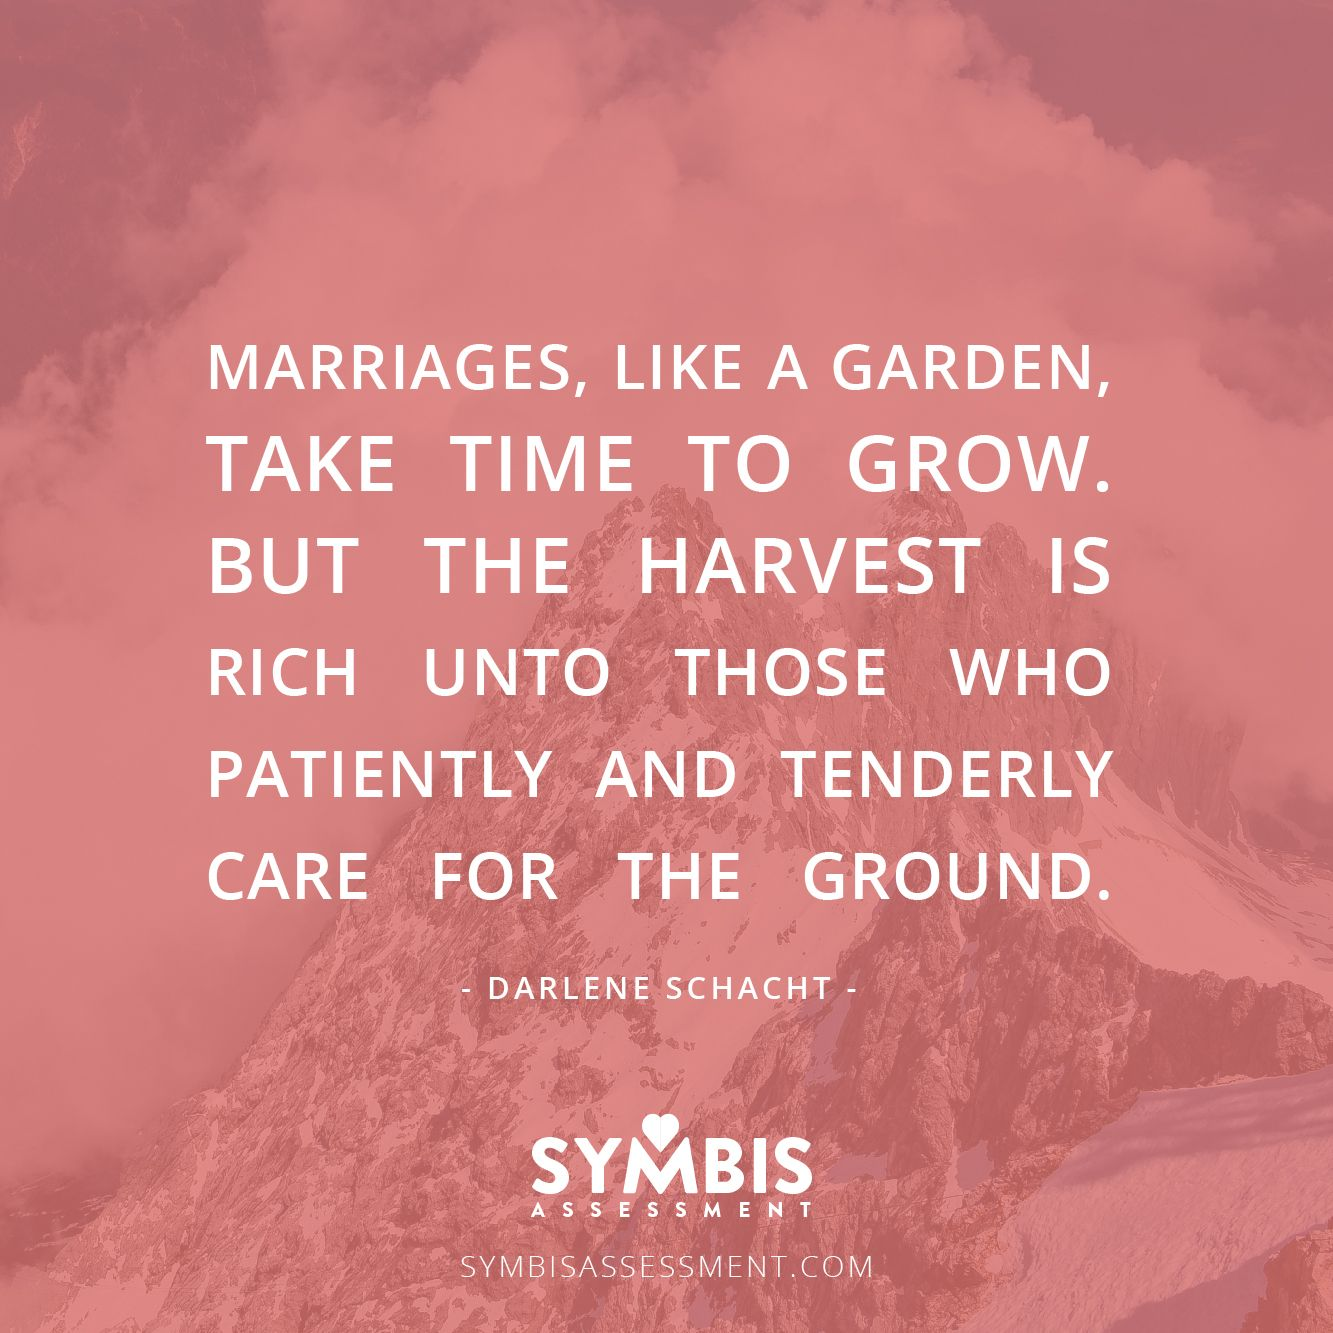 Marriage Is Like A Garden. #love #marriage #SYMBIS